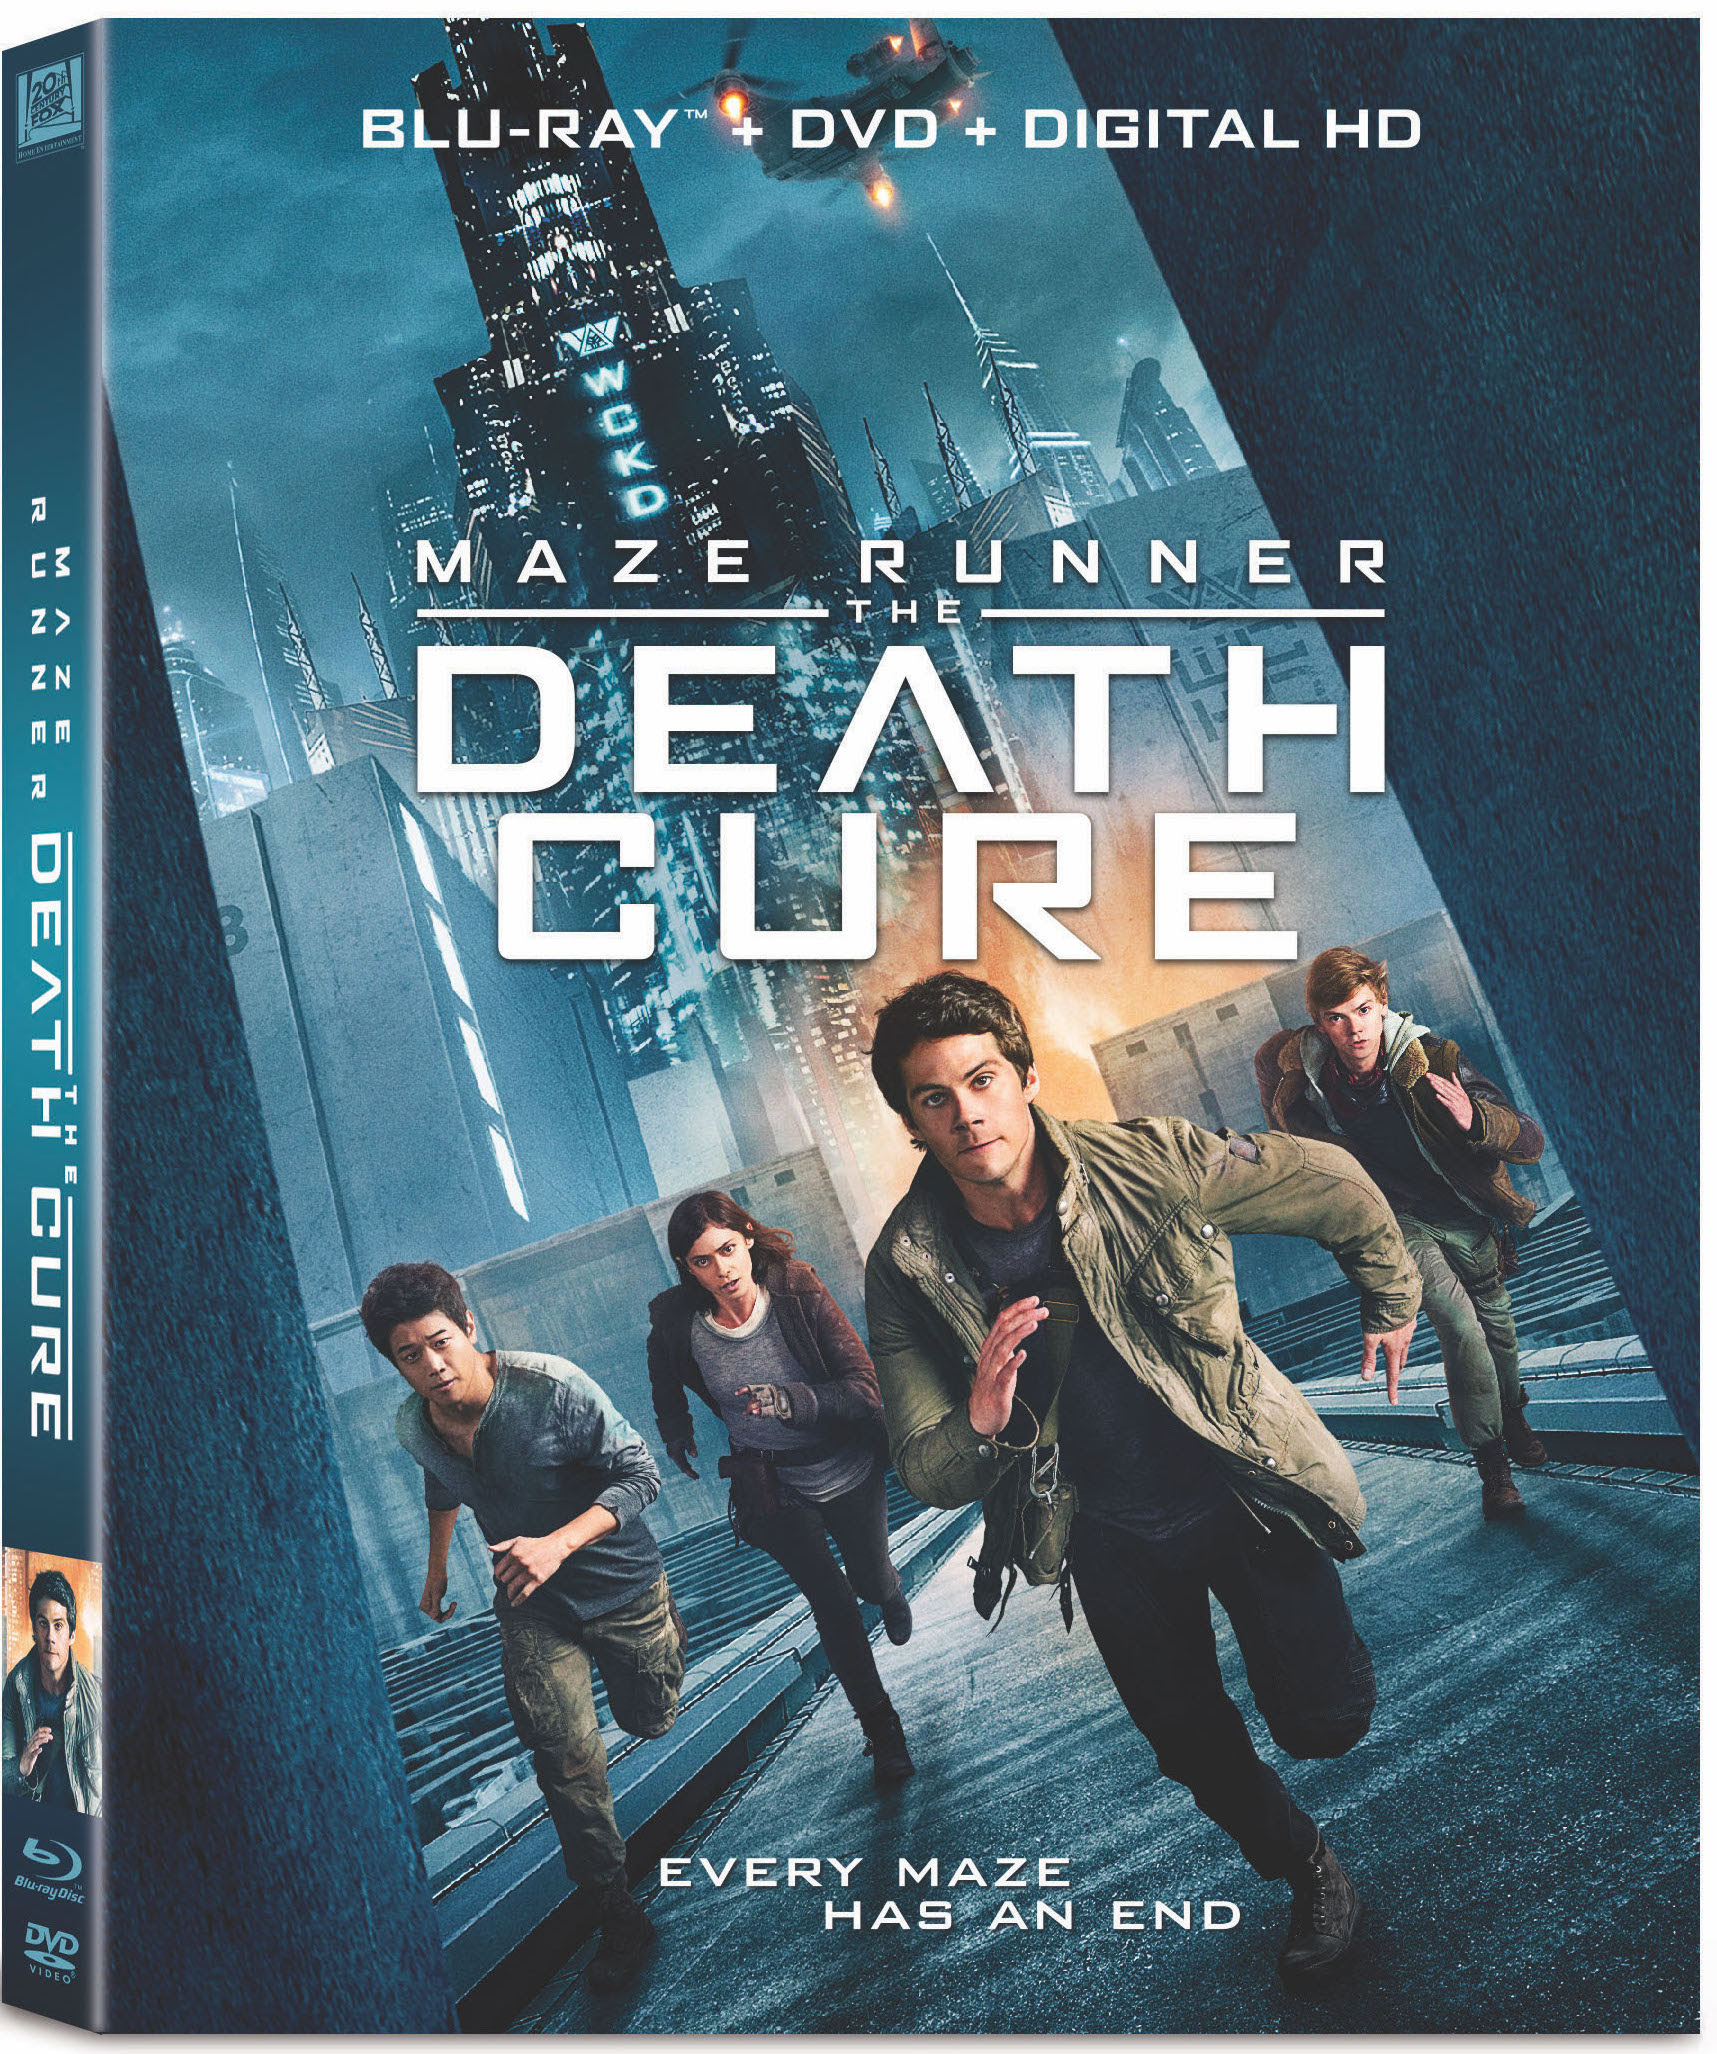 Maze Runner The Death Cure 2018 BluRay 720p 990MB [Hindi DD 5.1 – Eng] AAC MSub MKV